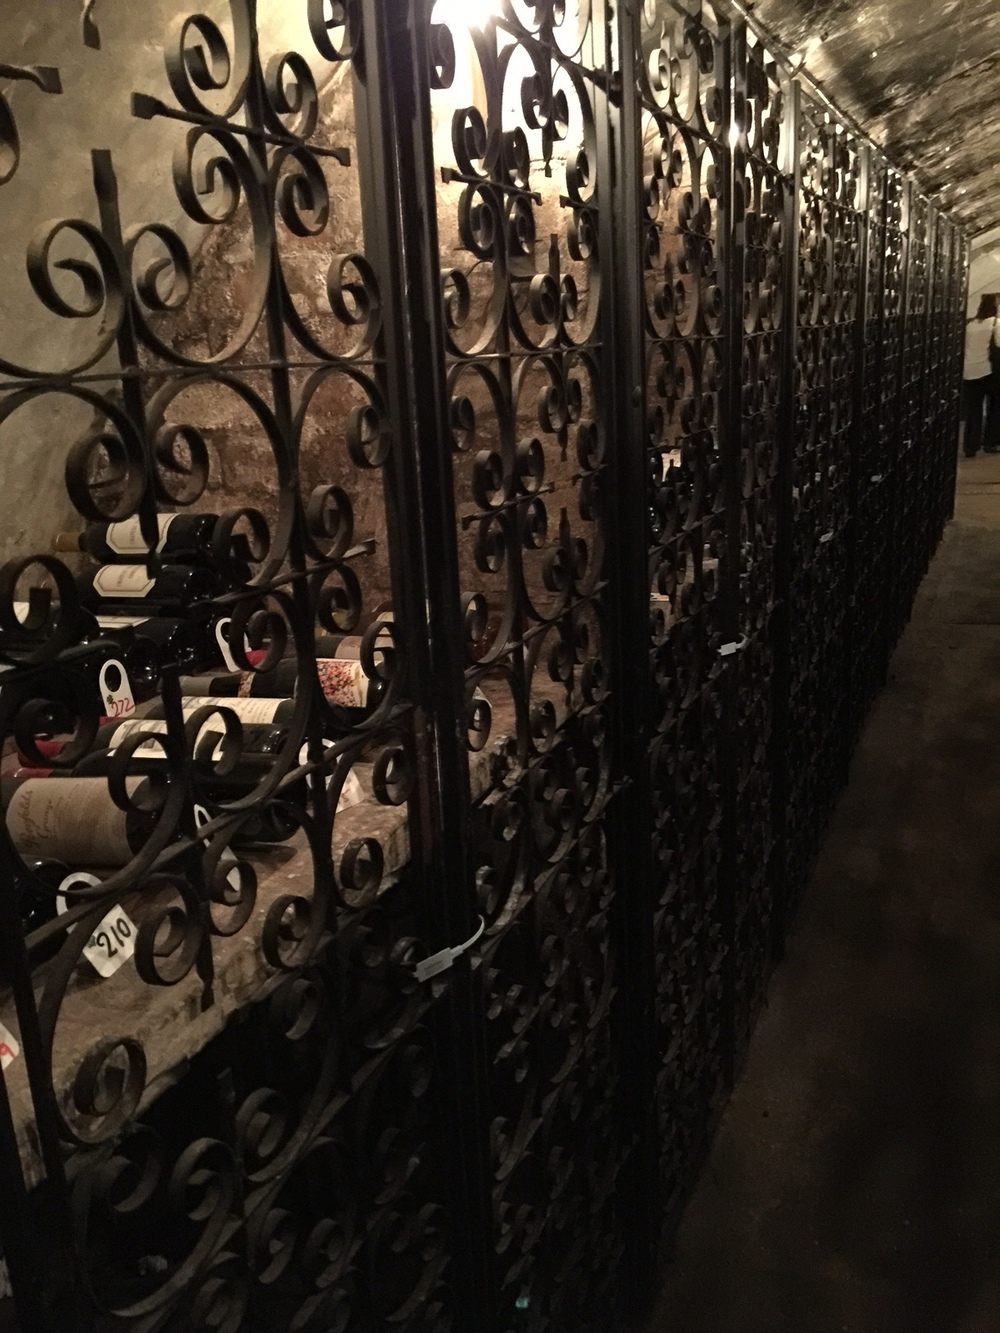 The wine cellar...once a WWII bunker